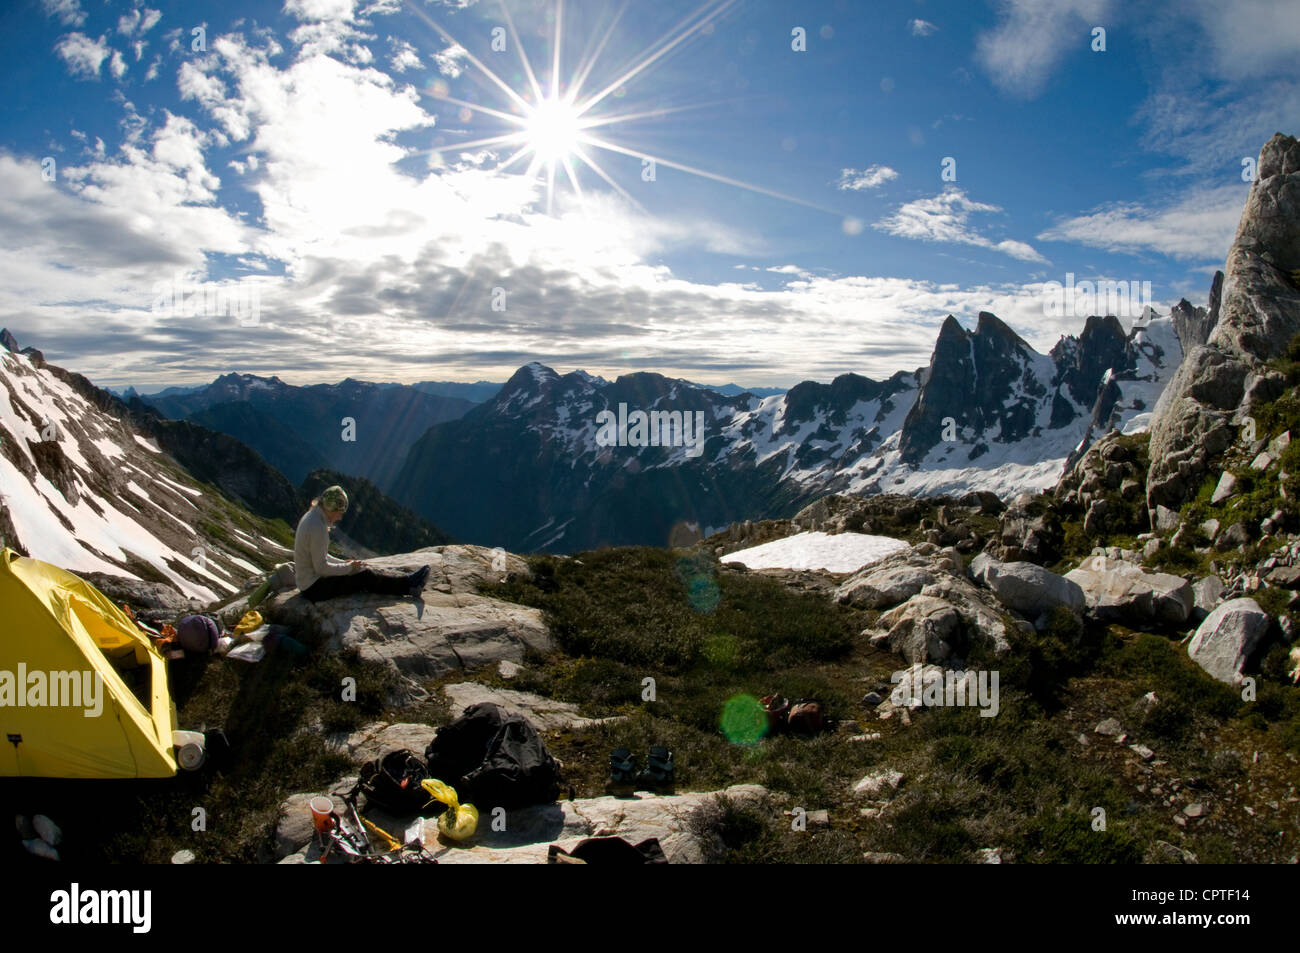 Backpacker at mountain camp, Picket Pass, North Cascades National Park, WA, USA - Stock Image